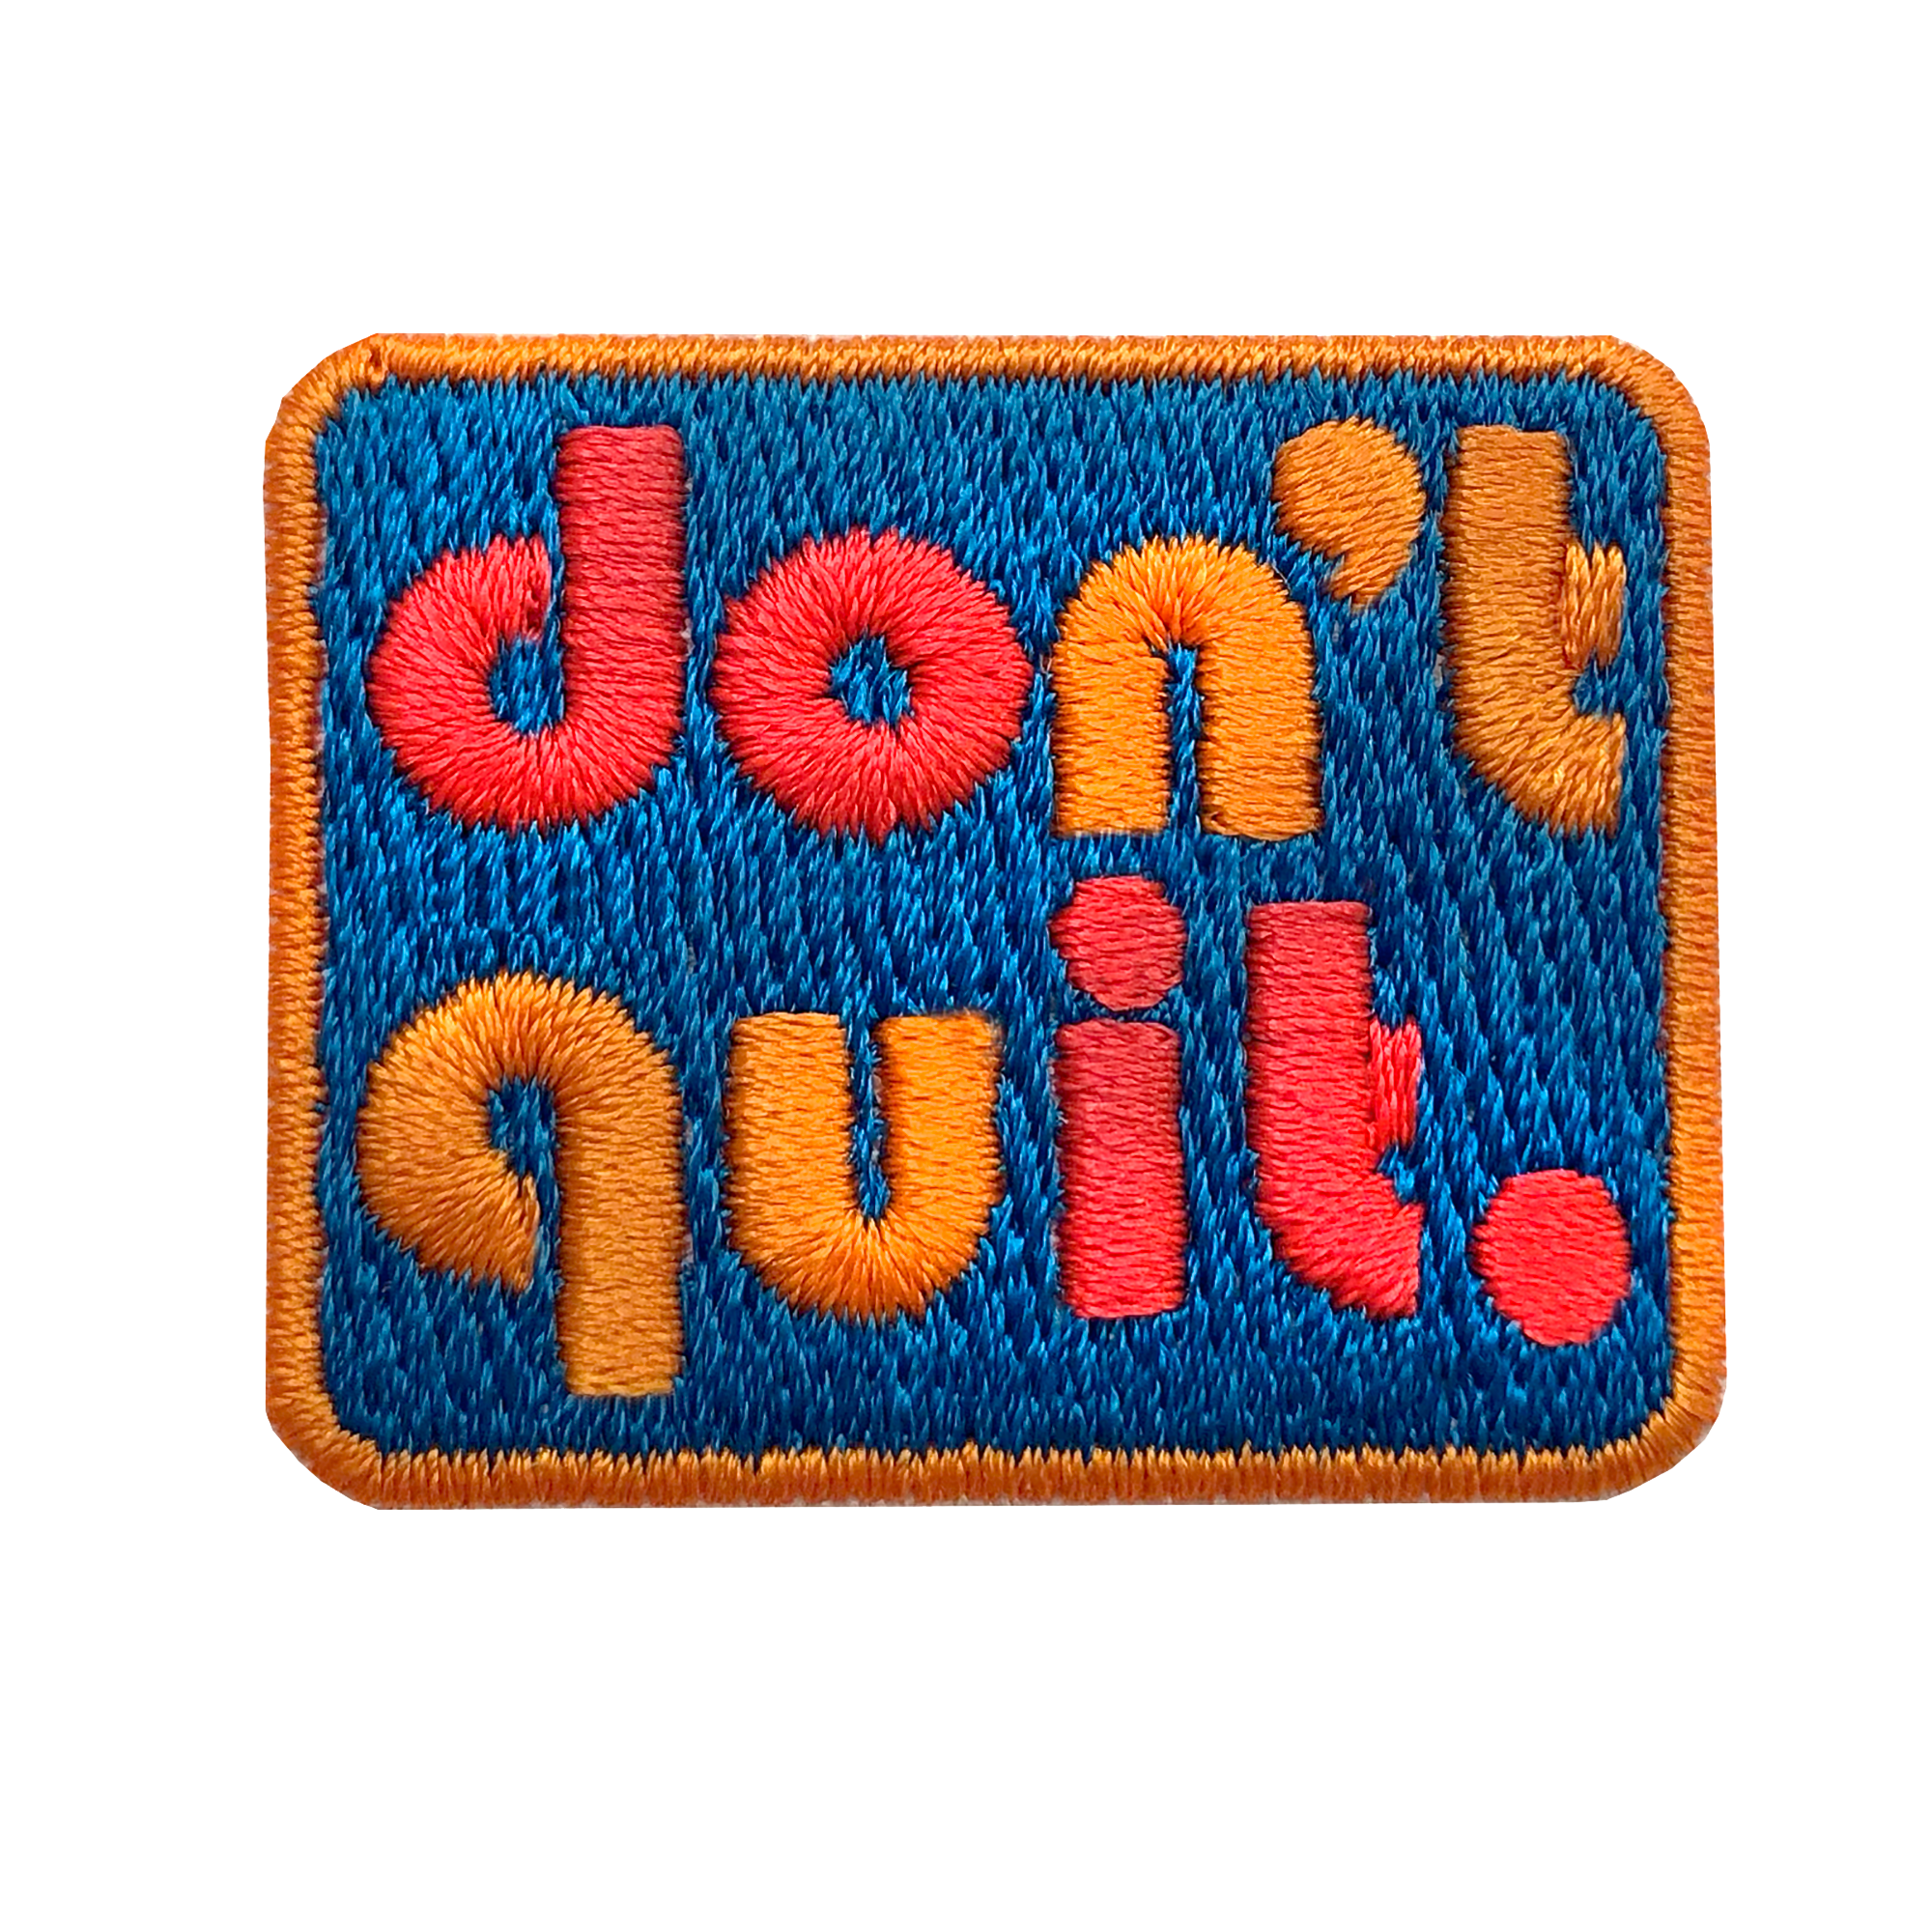 Label DOn't quIT